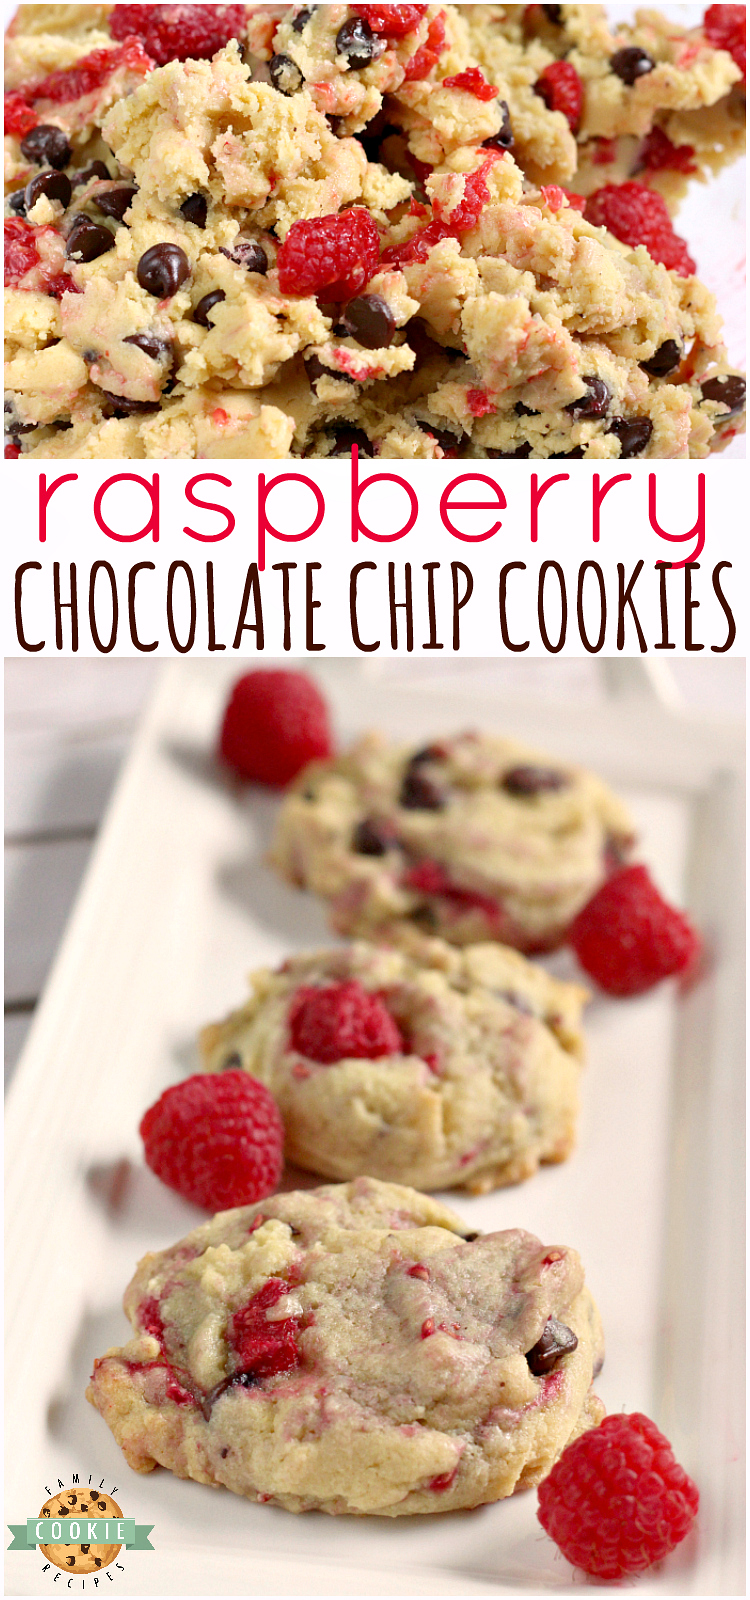 Raspberry Chocolate Chip Cookies is a new invention of mine and I want to share it with all of you! I make a lot of treats at my house and there are quite a few that I love, but even with all of the fancy treats I have made, I still feel like chocolate chip cookies are my favorite. via @familycookierecipes